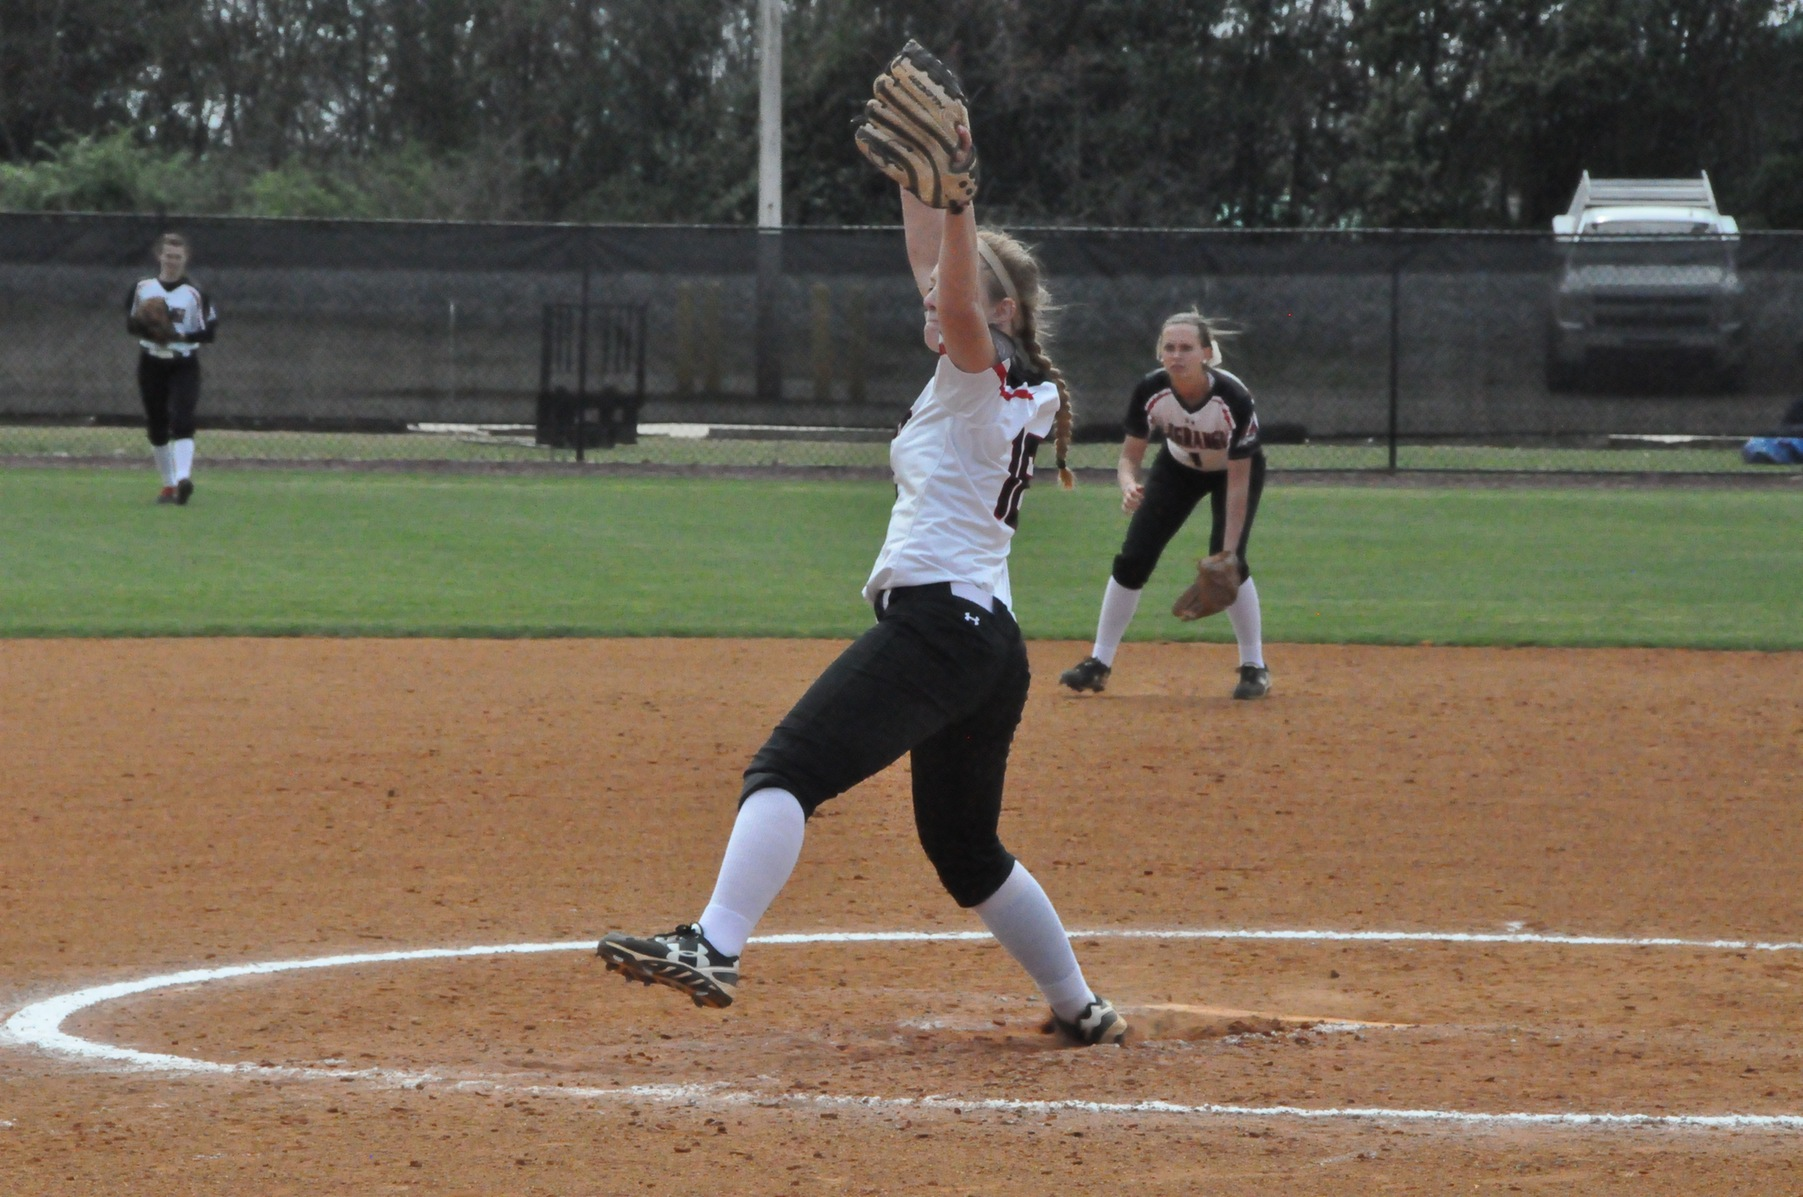 Softball: Panthers split doubleheader with USA South West Division leader Maryville